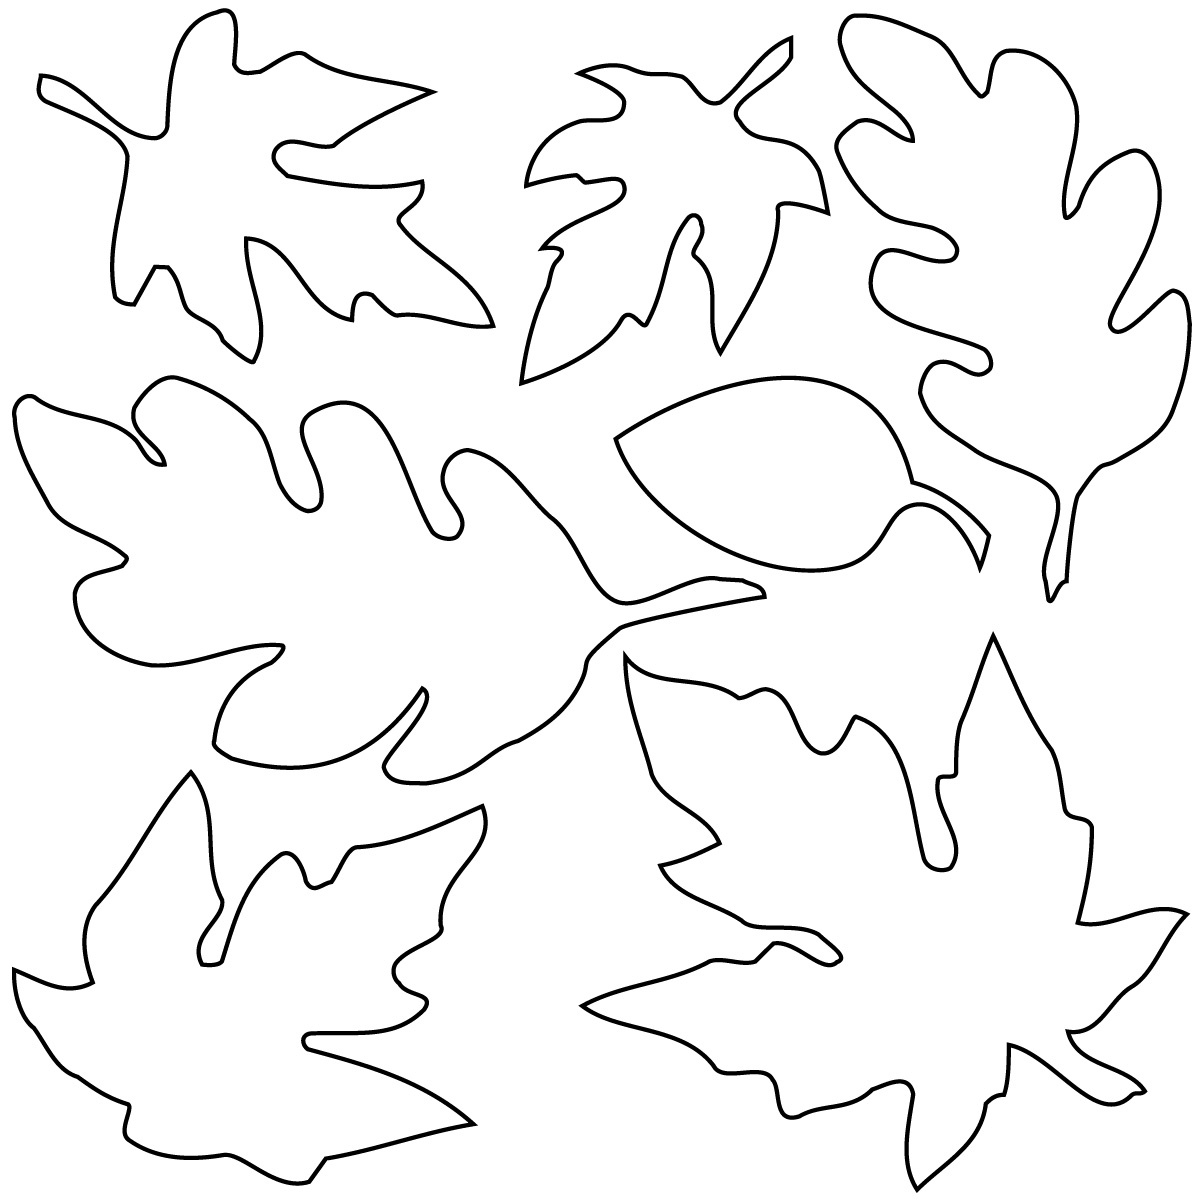 fall leaves print out autumn leaf cutouts templates clipart best out leaves print fall